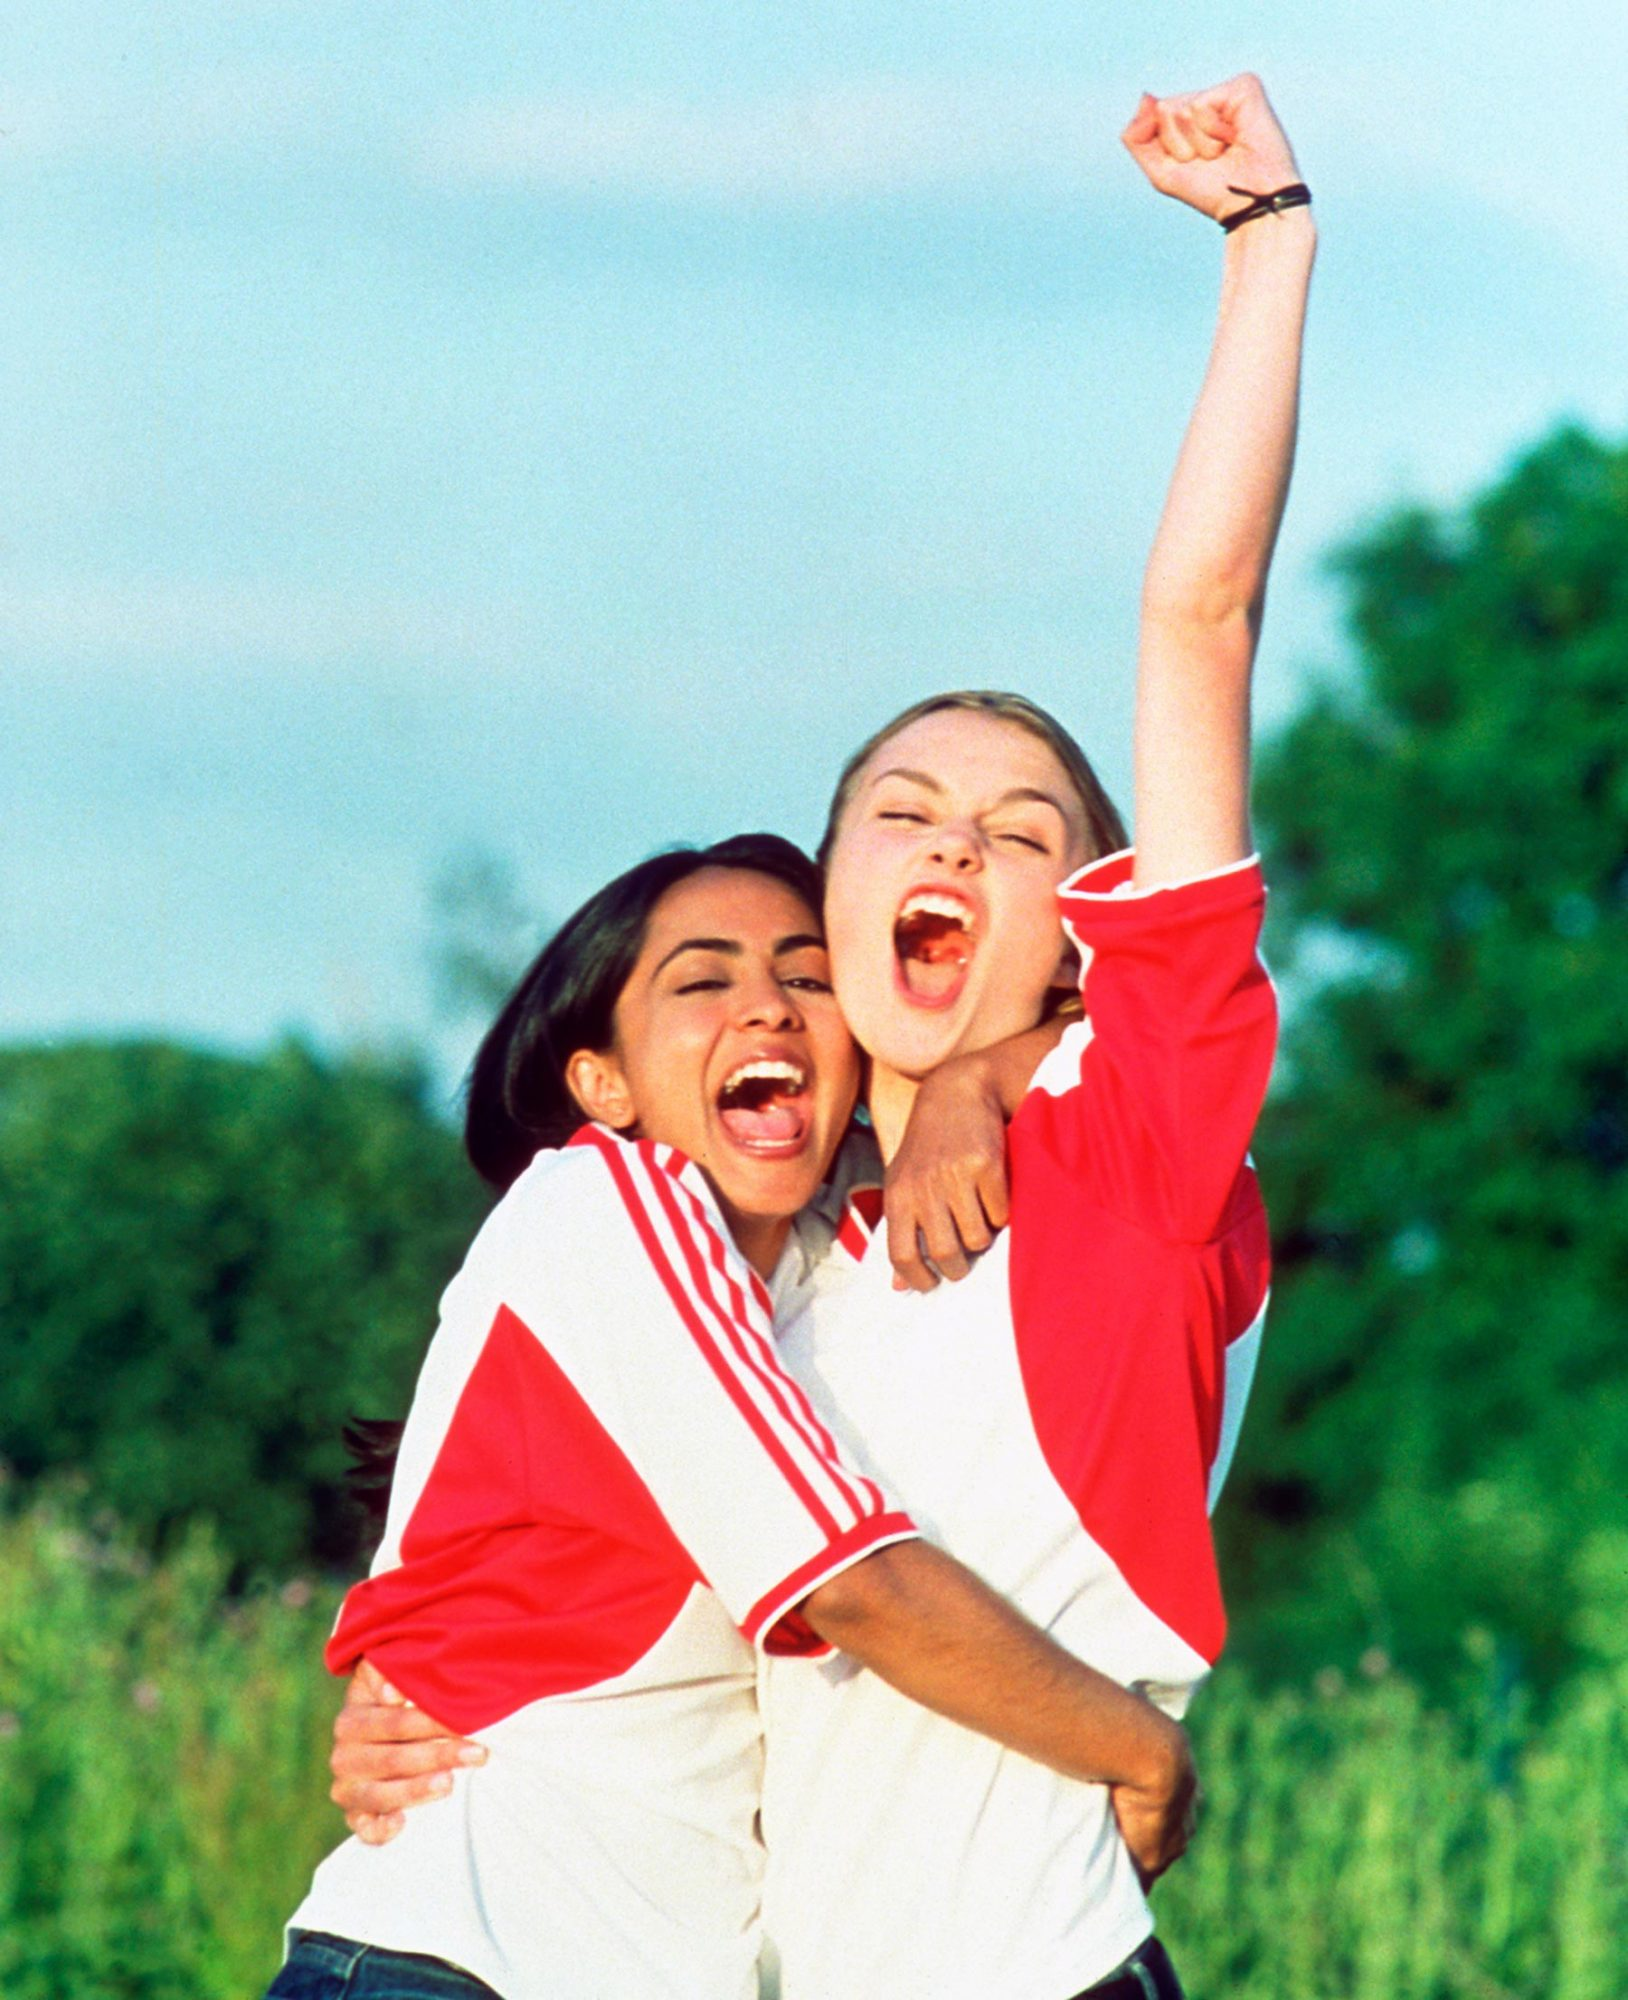 Bend It Like Beckham (2003)Parminder Nagra (L) and Keira Knightley.